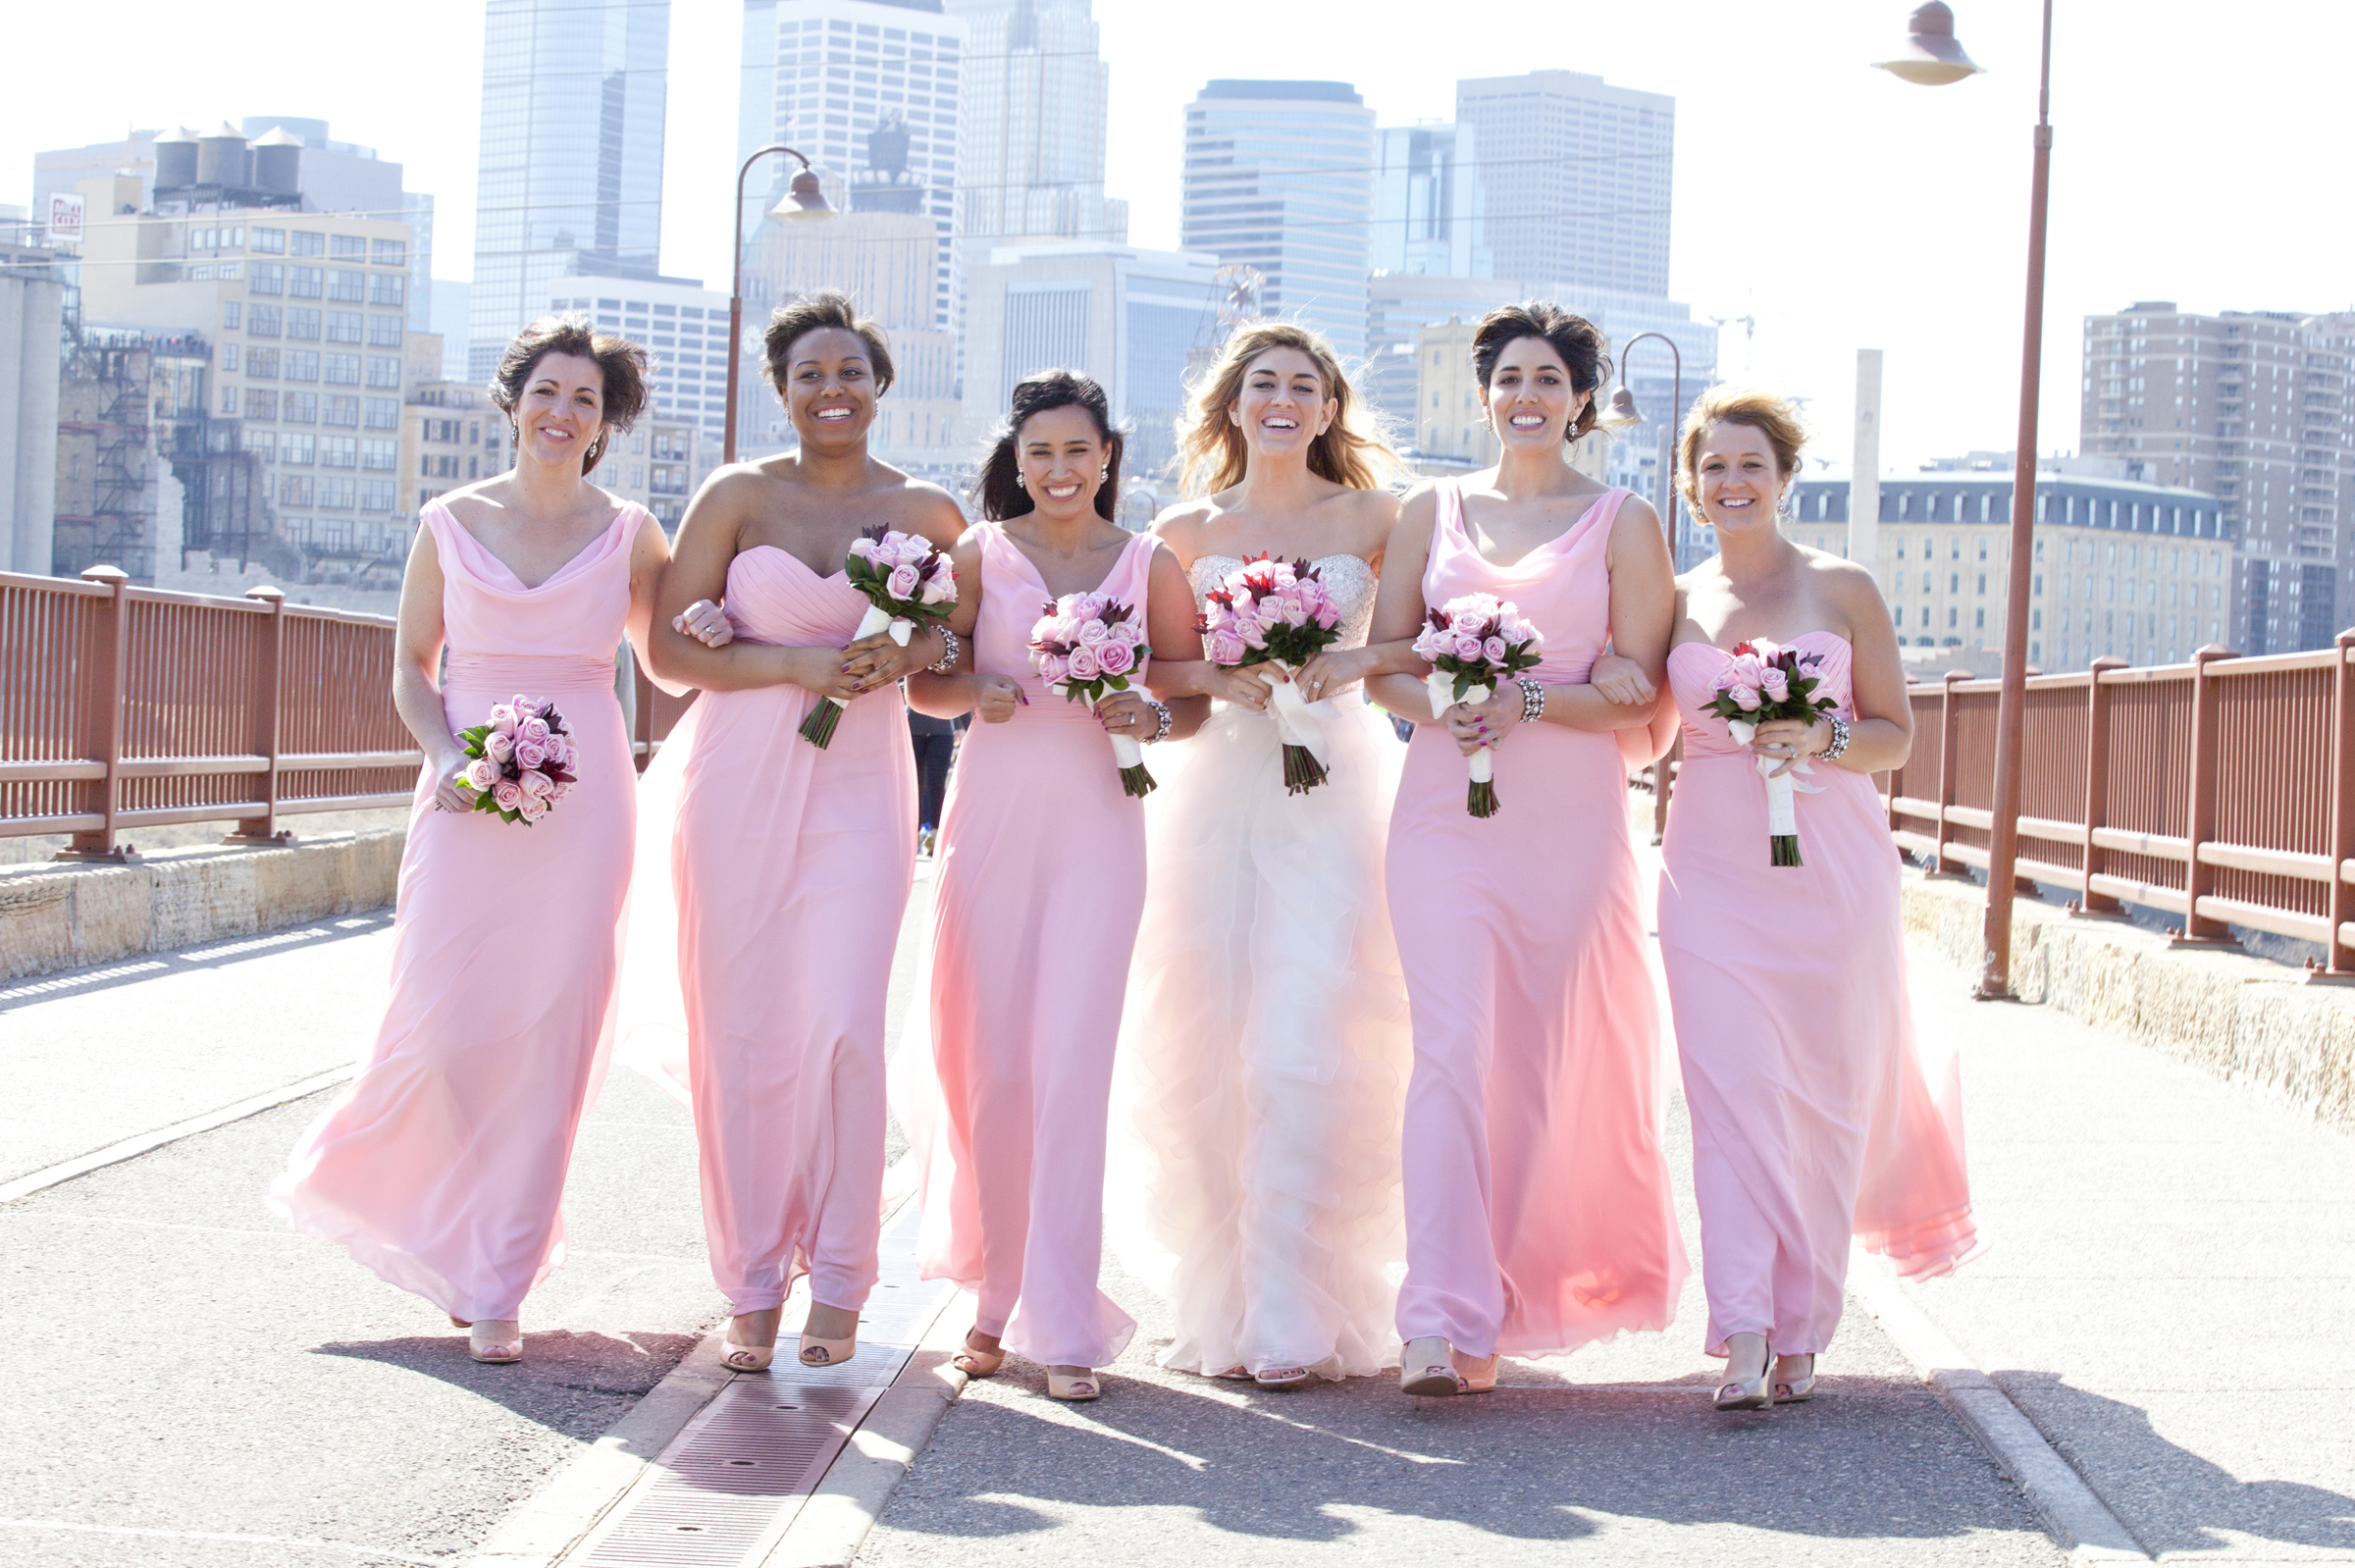 Wedding photography at stone arch bridge minneapolis